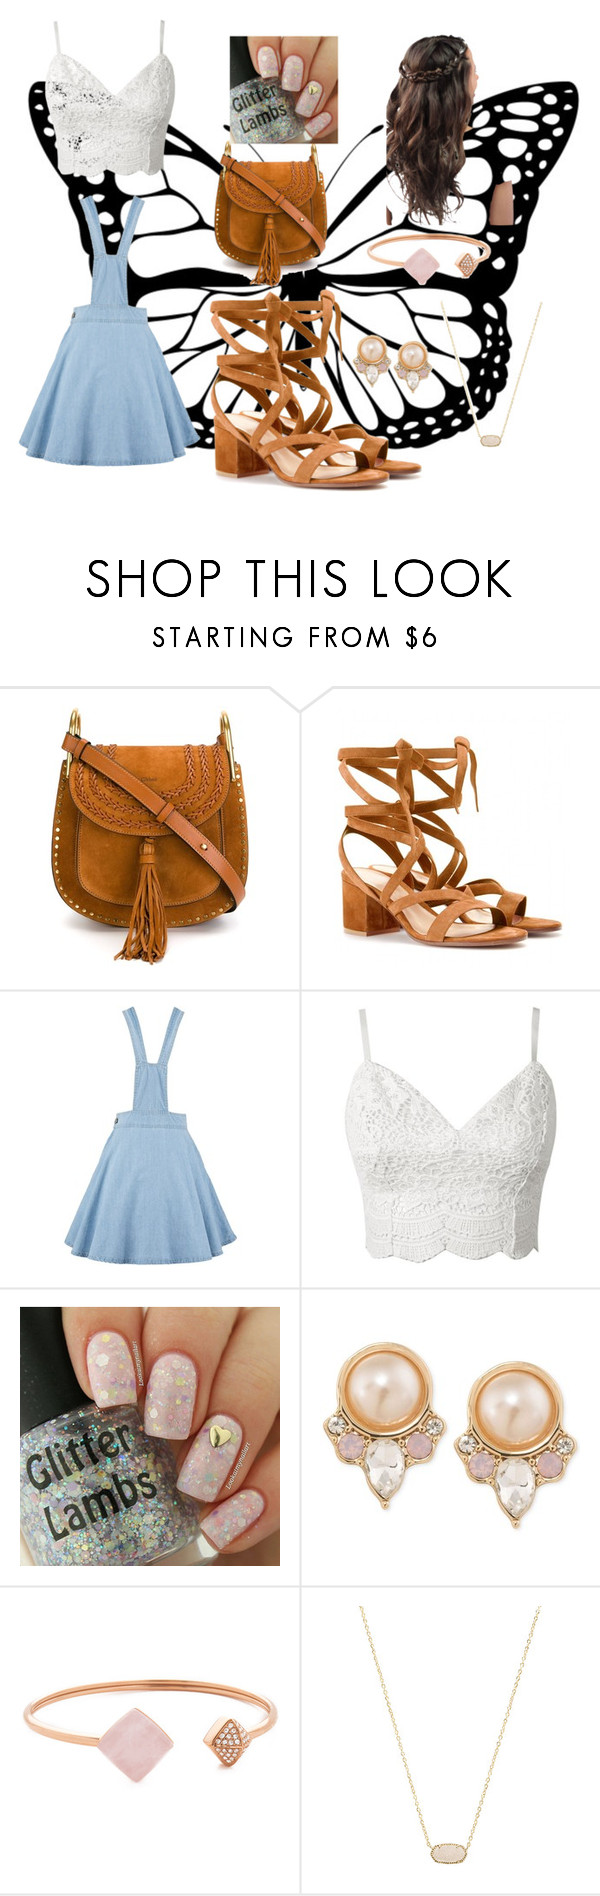 """""""Casual Day Look"""" by jadine-naiker on Polyvore featuring Chloé, Gianvito Rossi, Carolee, Michael Kors and Kendra Scott"""